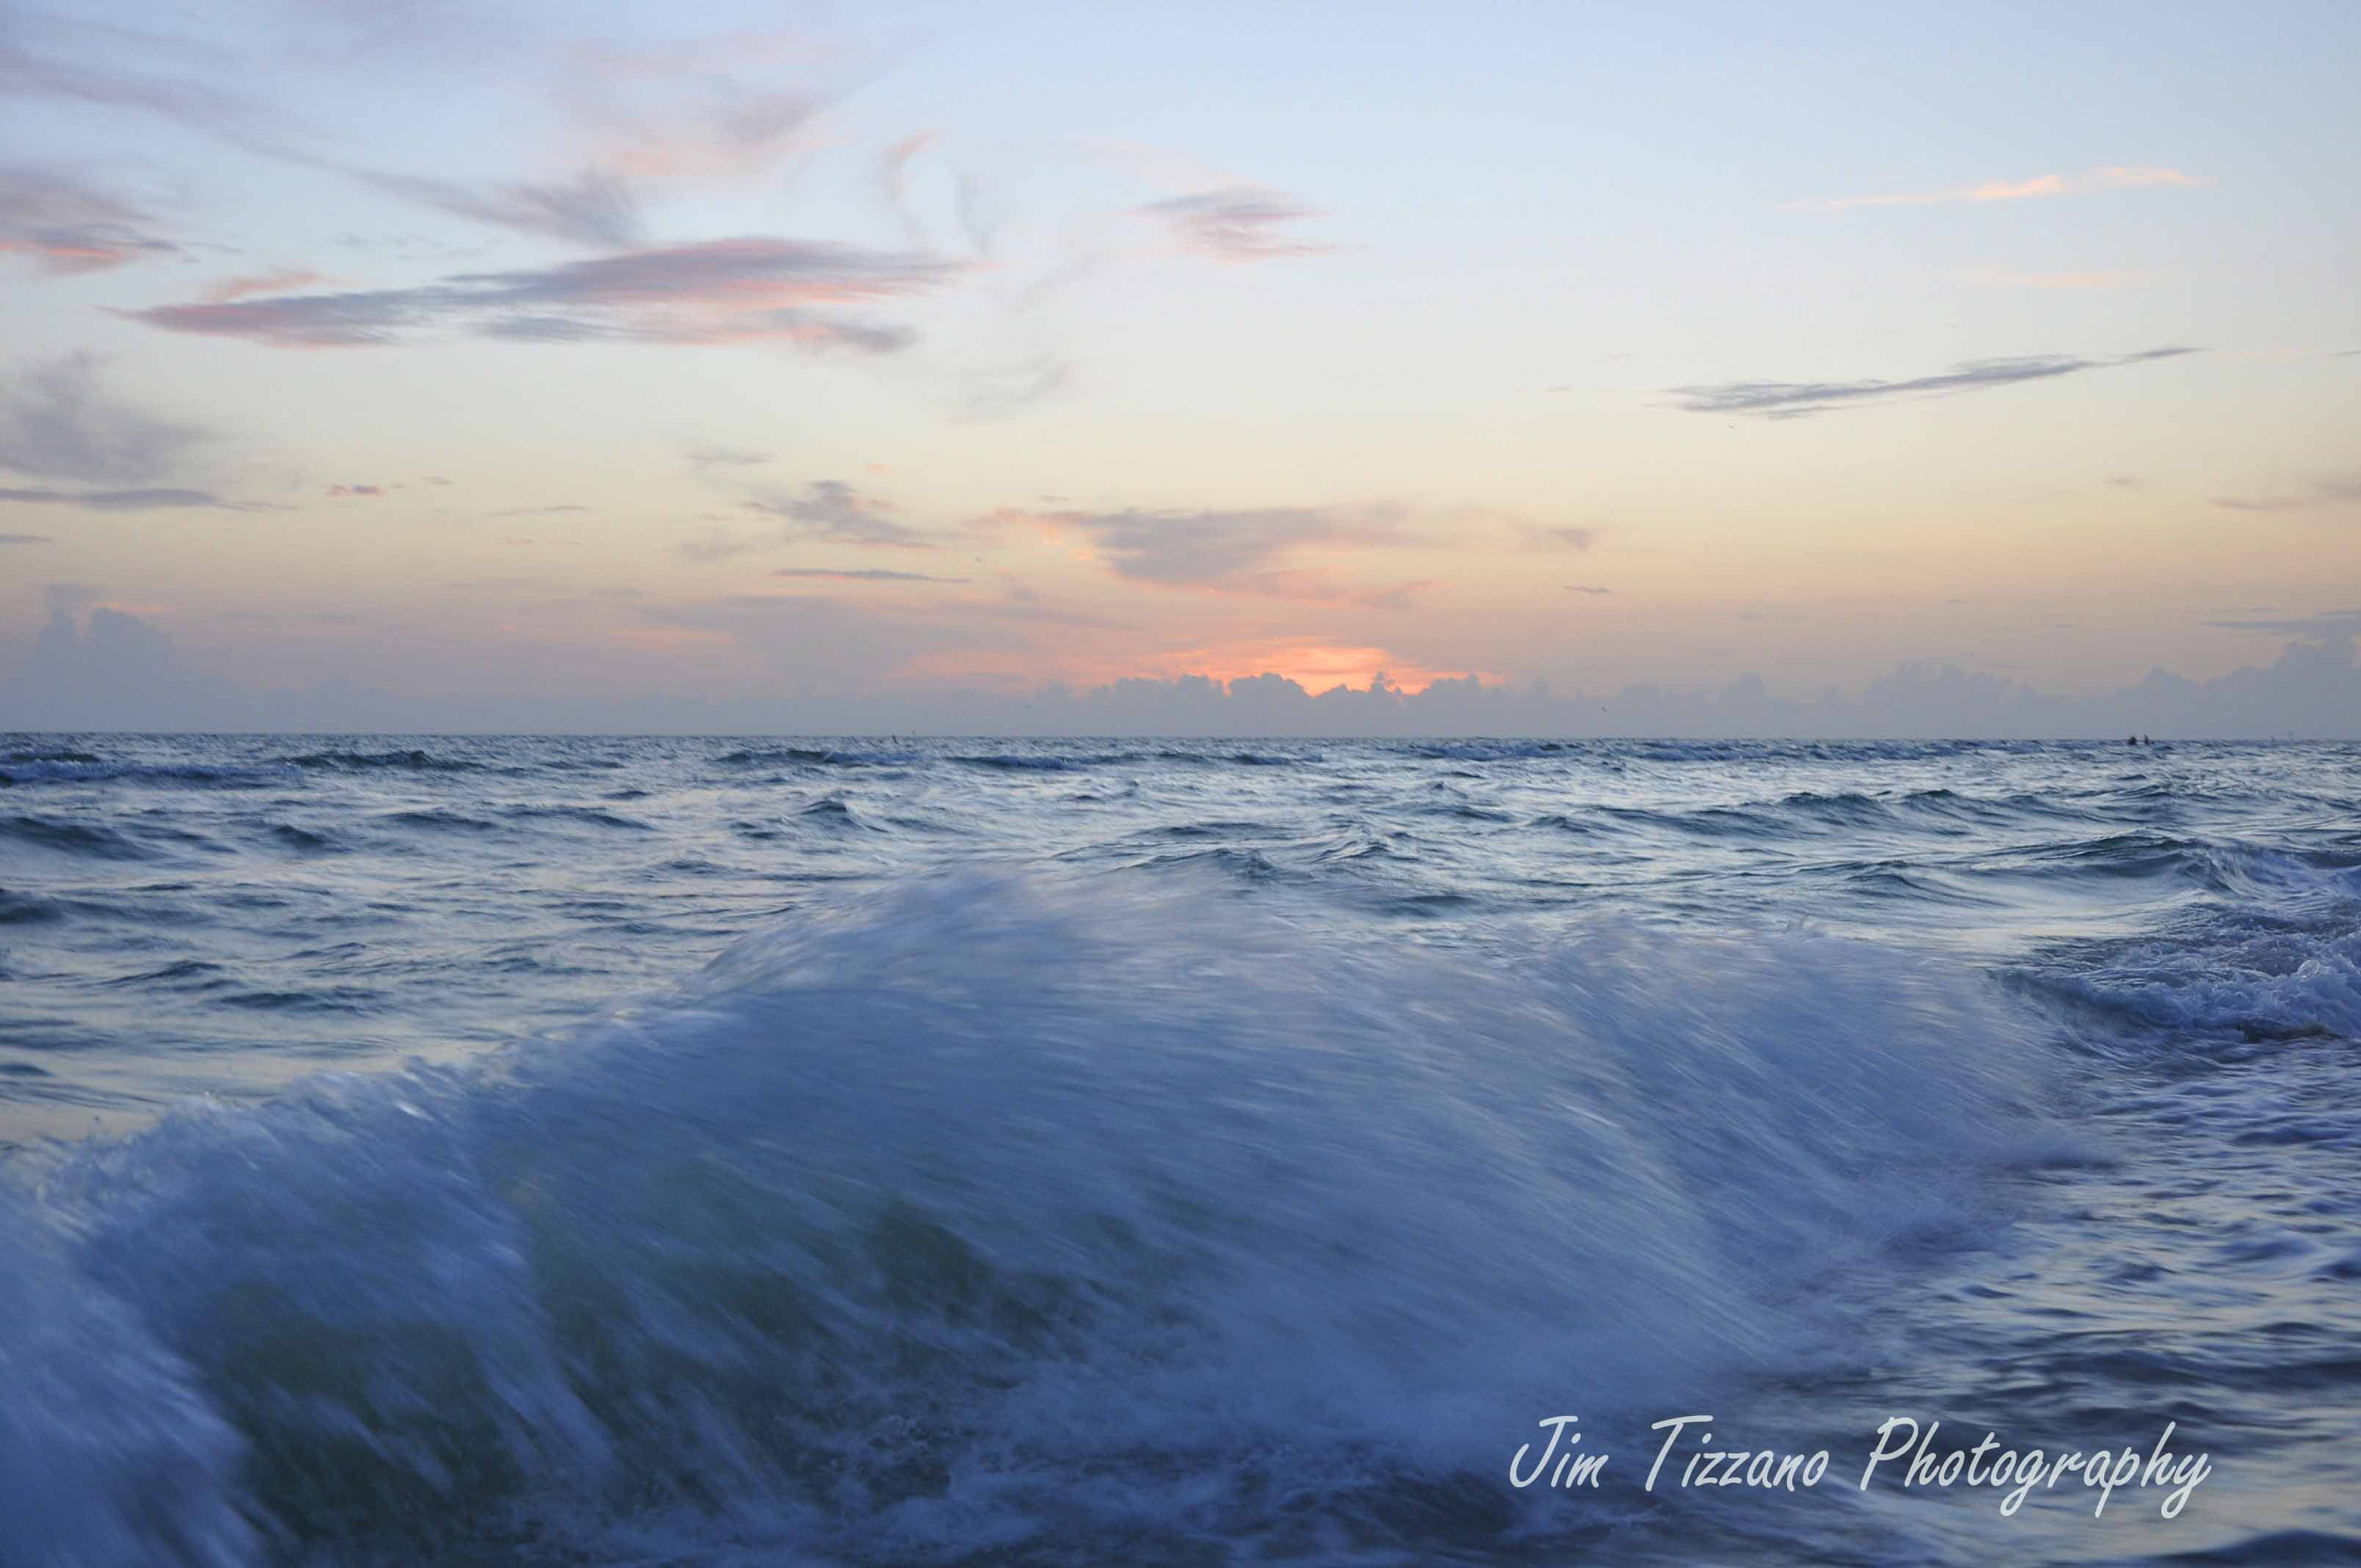 Treasure Island, Florida - While this is about 45 minutes north of Sarasota, the picture was too pretty not to share. Be sure to check out all of Jim Tizzano Photography's pictures!